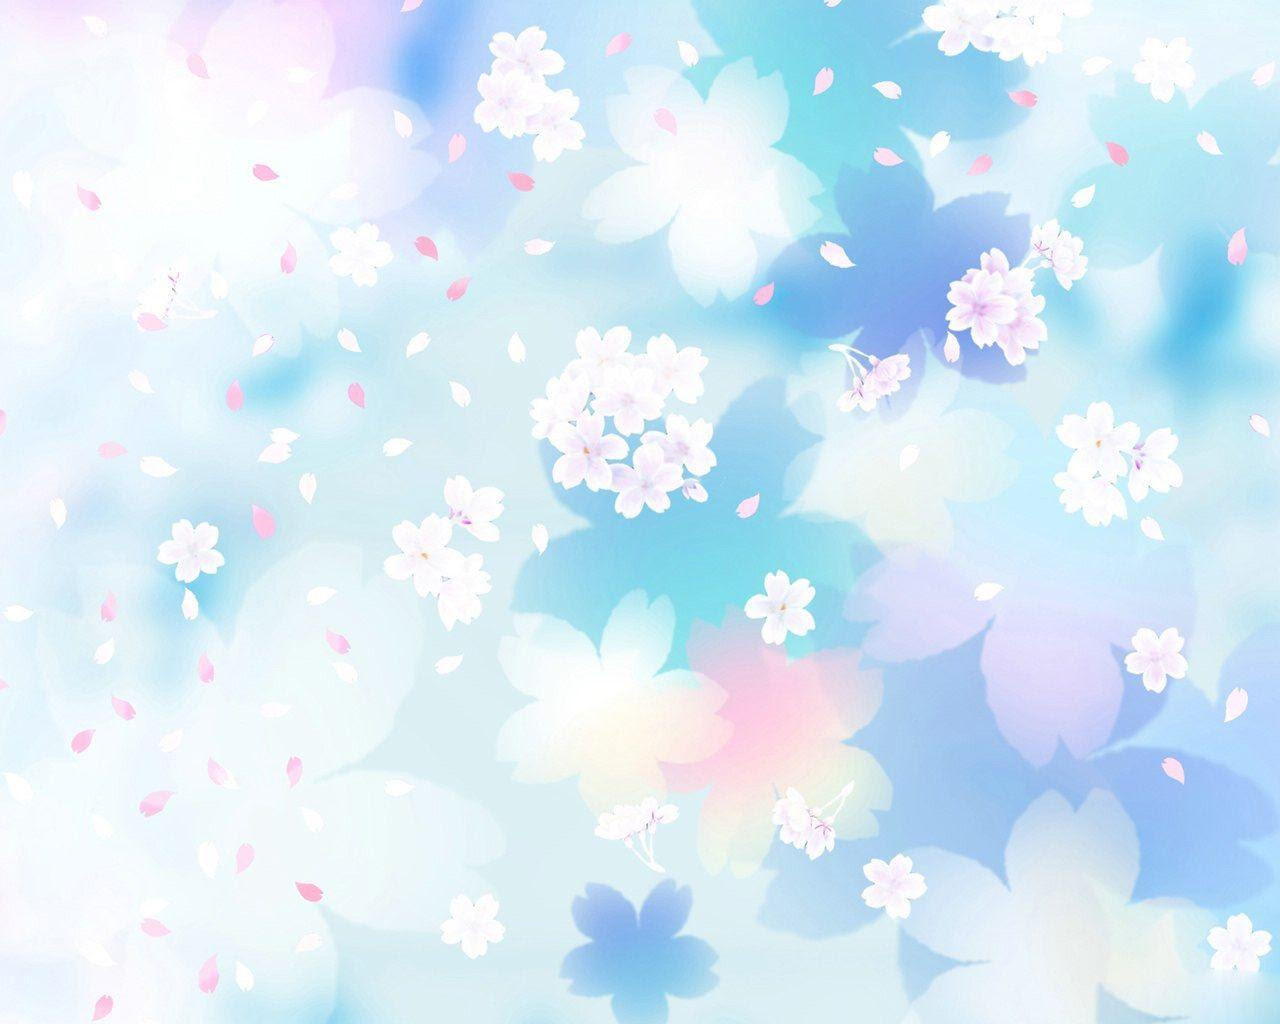 Pretty Blue Backgrounds  Wallpaper Cave